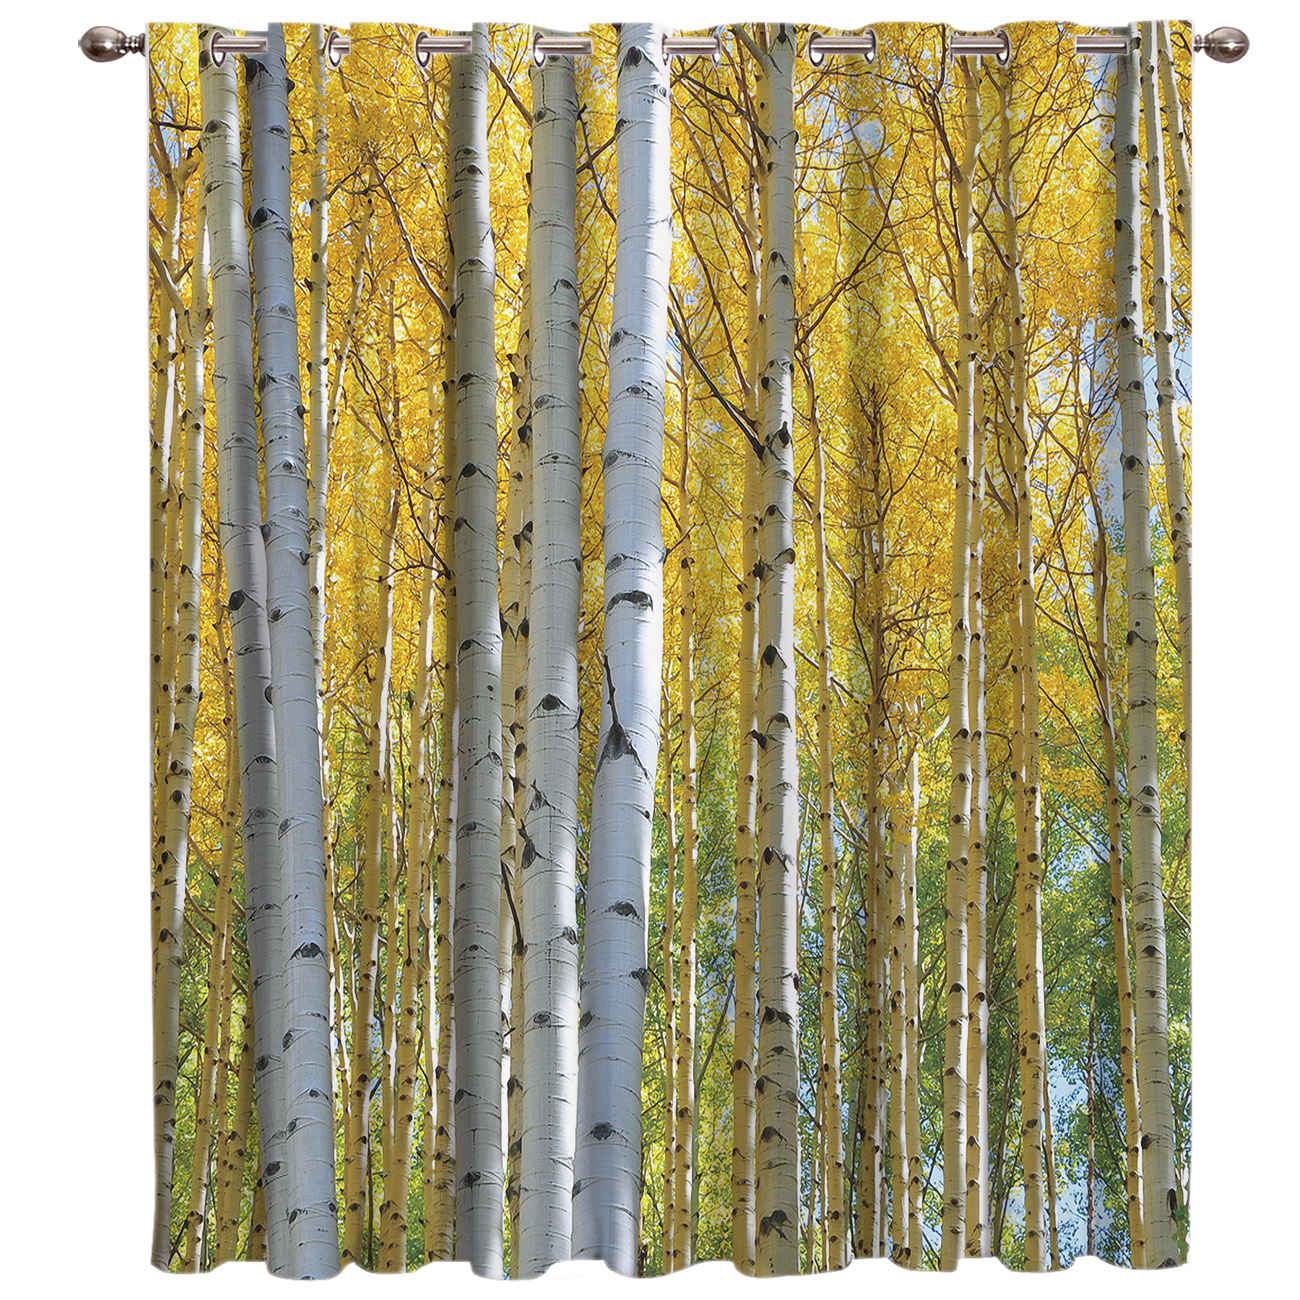 Yellow Birch White Branches Forest Landscape Window Curtains Dark Living Room Curtain Rod Kitchen Drapes Fabric Indoor Curtains Aliexpress